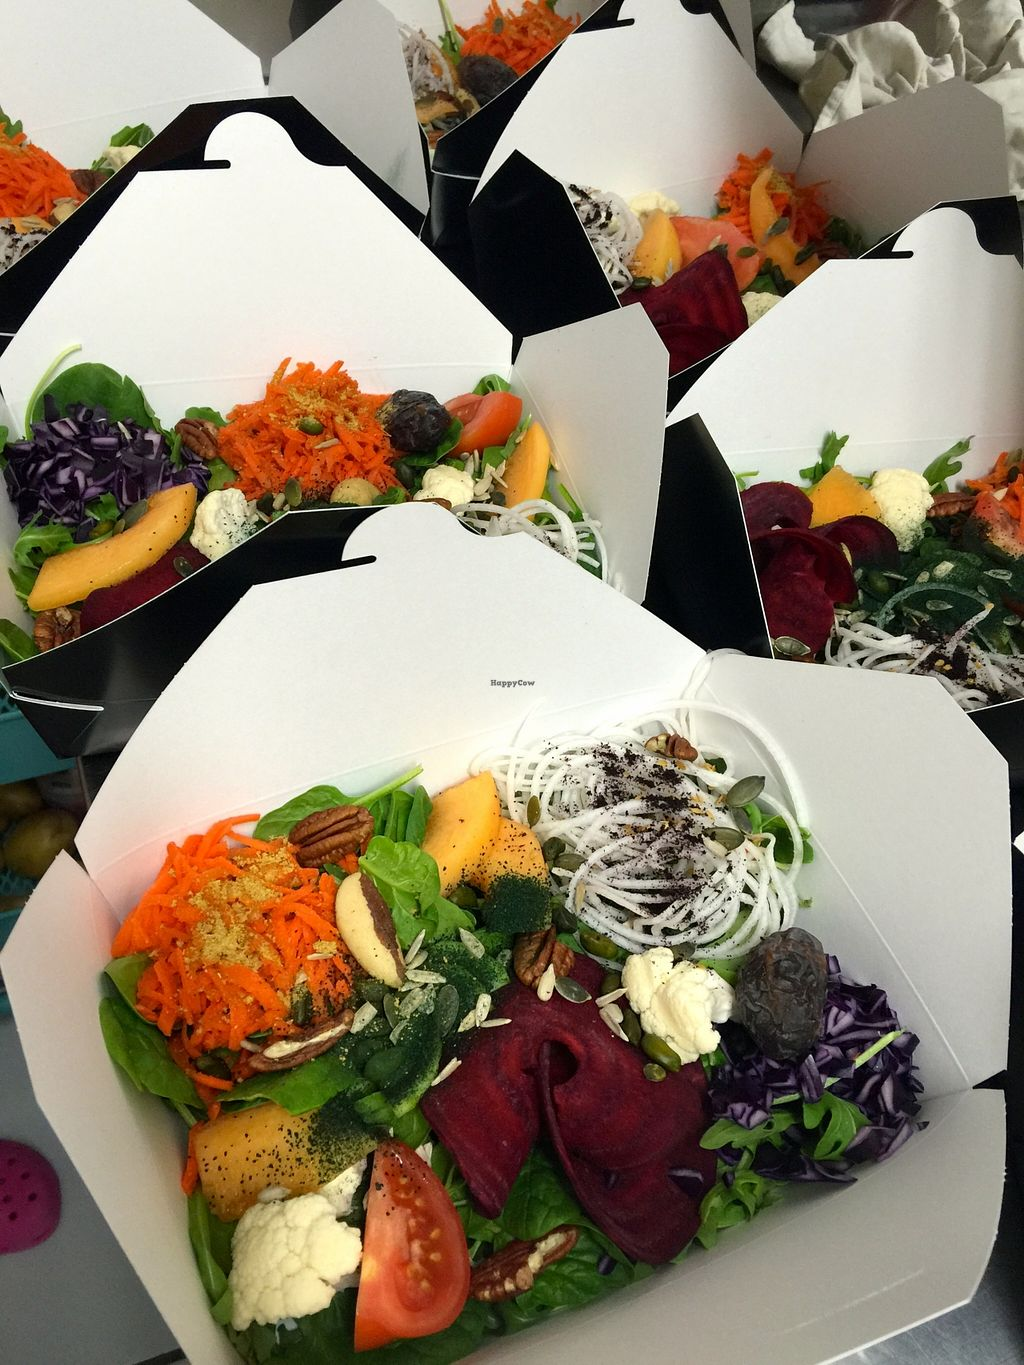 """Photo of Só Cuisine  by <a href=""""/members/profile/Anne%20VDH"""">Anne VDH</a> <br/>Raw salad to go from So Cuisine St Barth <br/> December 30, 2015  - <a href='/contact/abuse/image/67686/130414'>Report</a>"""